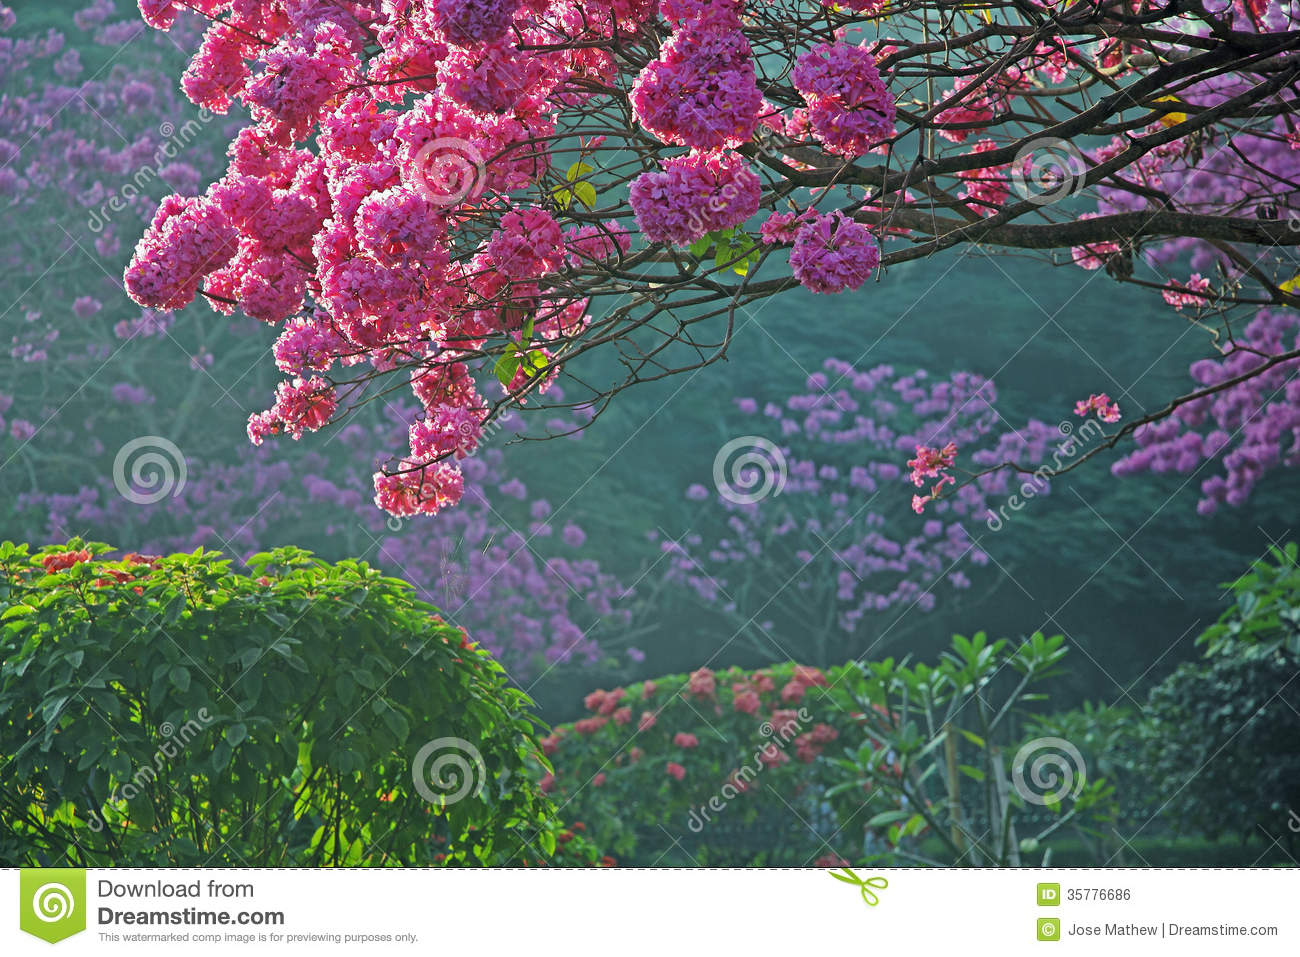 Trees In Full Bloom With Pink Flowers Royalty Free Stock